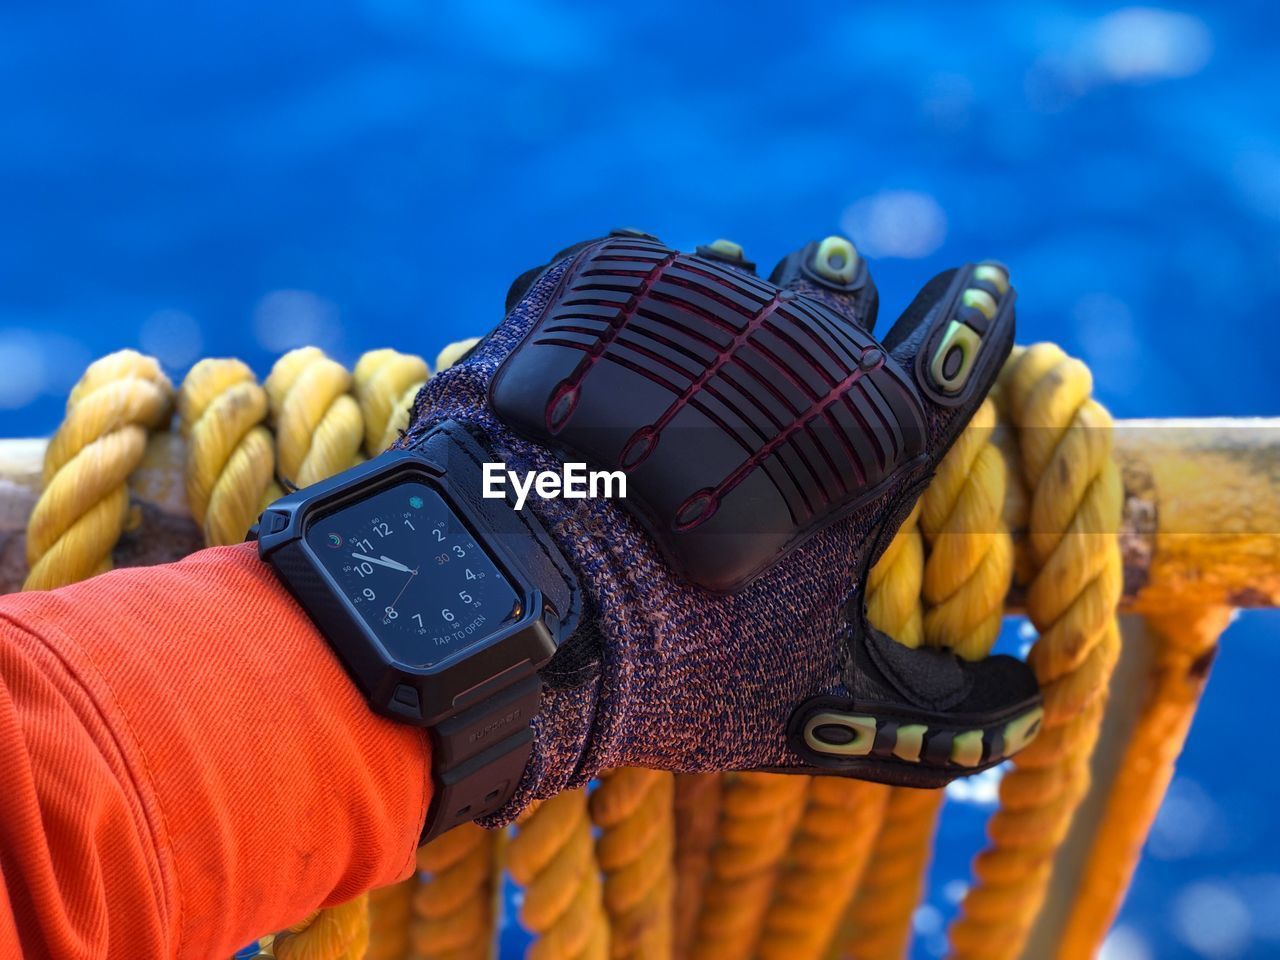 close-up, water, focus on foreground, blue, sport, rope, sea, glove, day, nature, equipment, sunlight, outdoors, one person, hand, strength, leisure activity, human hand, personal accessory